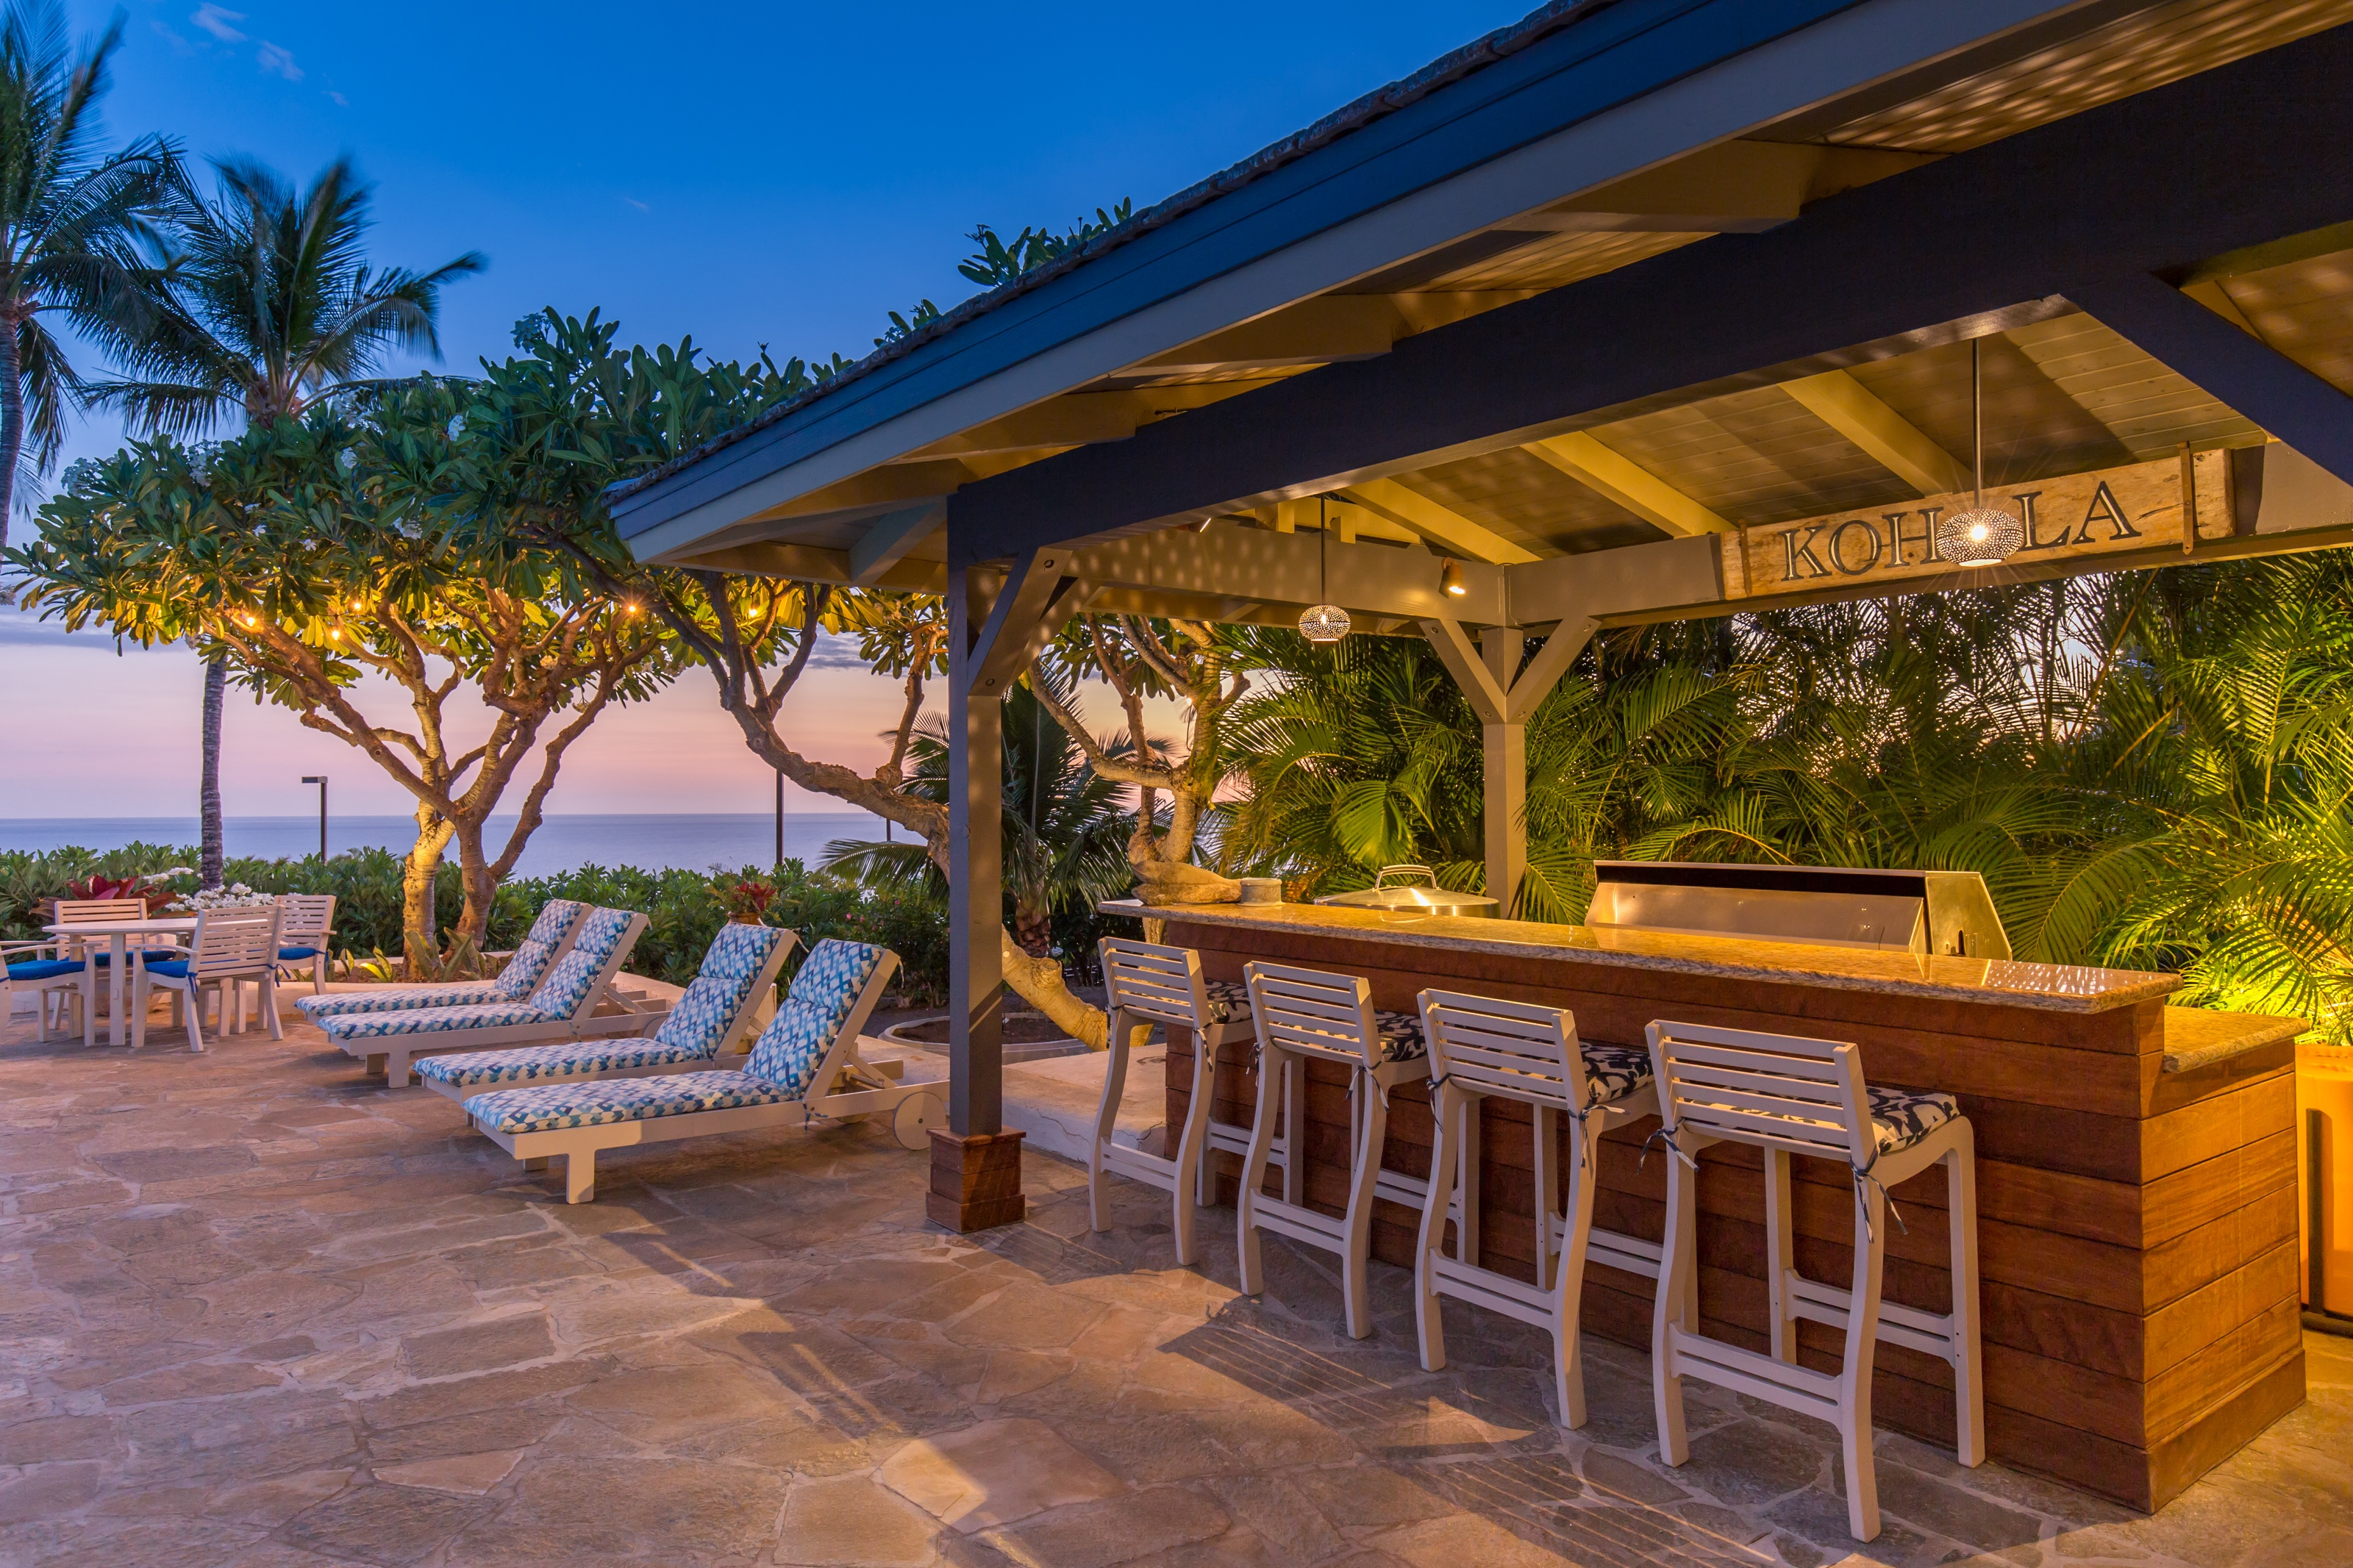 Twilight bar at Kohala Ranch